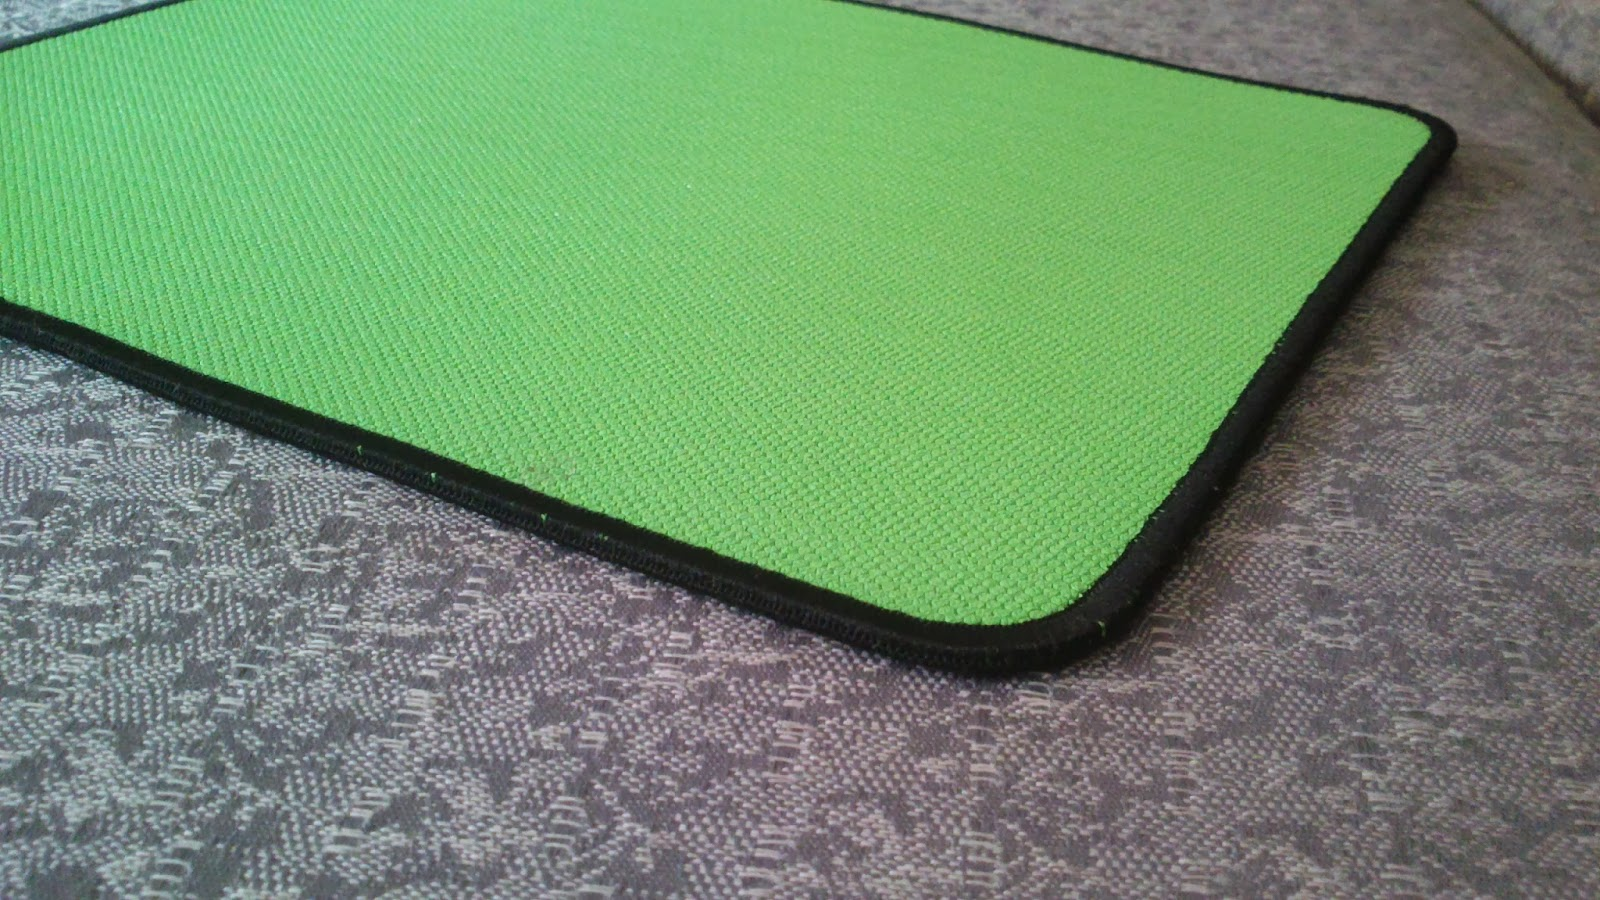 Techo Mouse Pad Razer Mantis Normal Edge Gaming Mat The Base Material Is Same As Others An Anti Slip Rubber It Has A Great Grip And Does Not Easily At Of